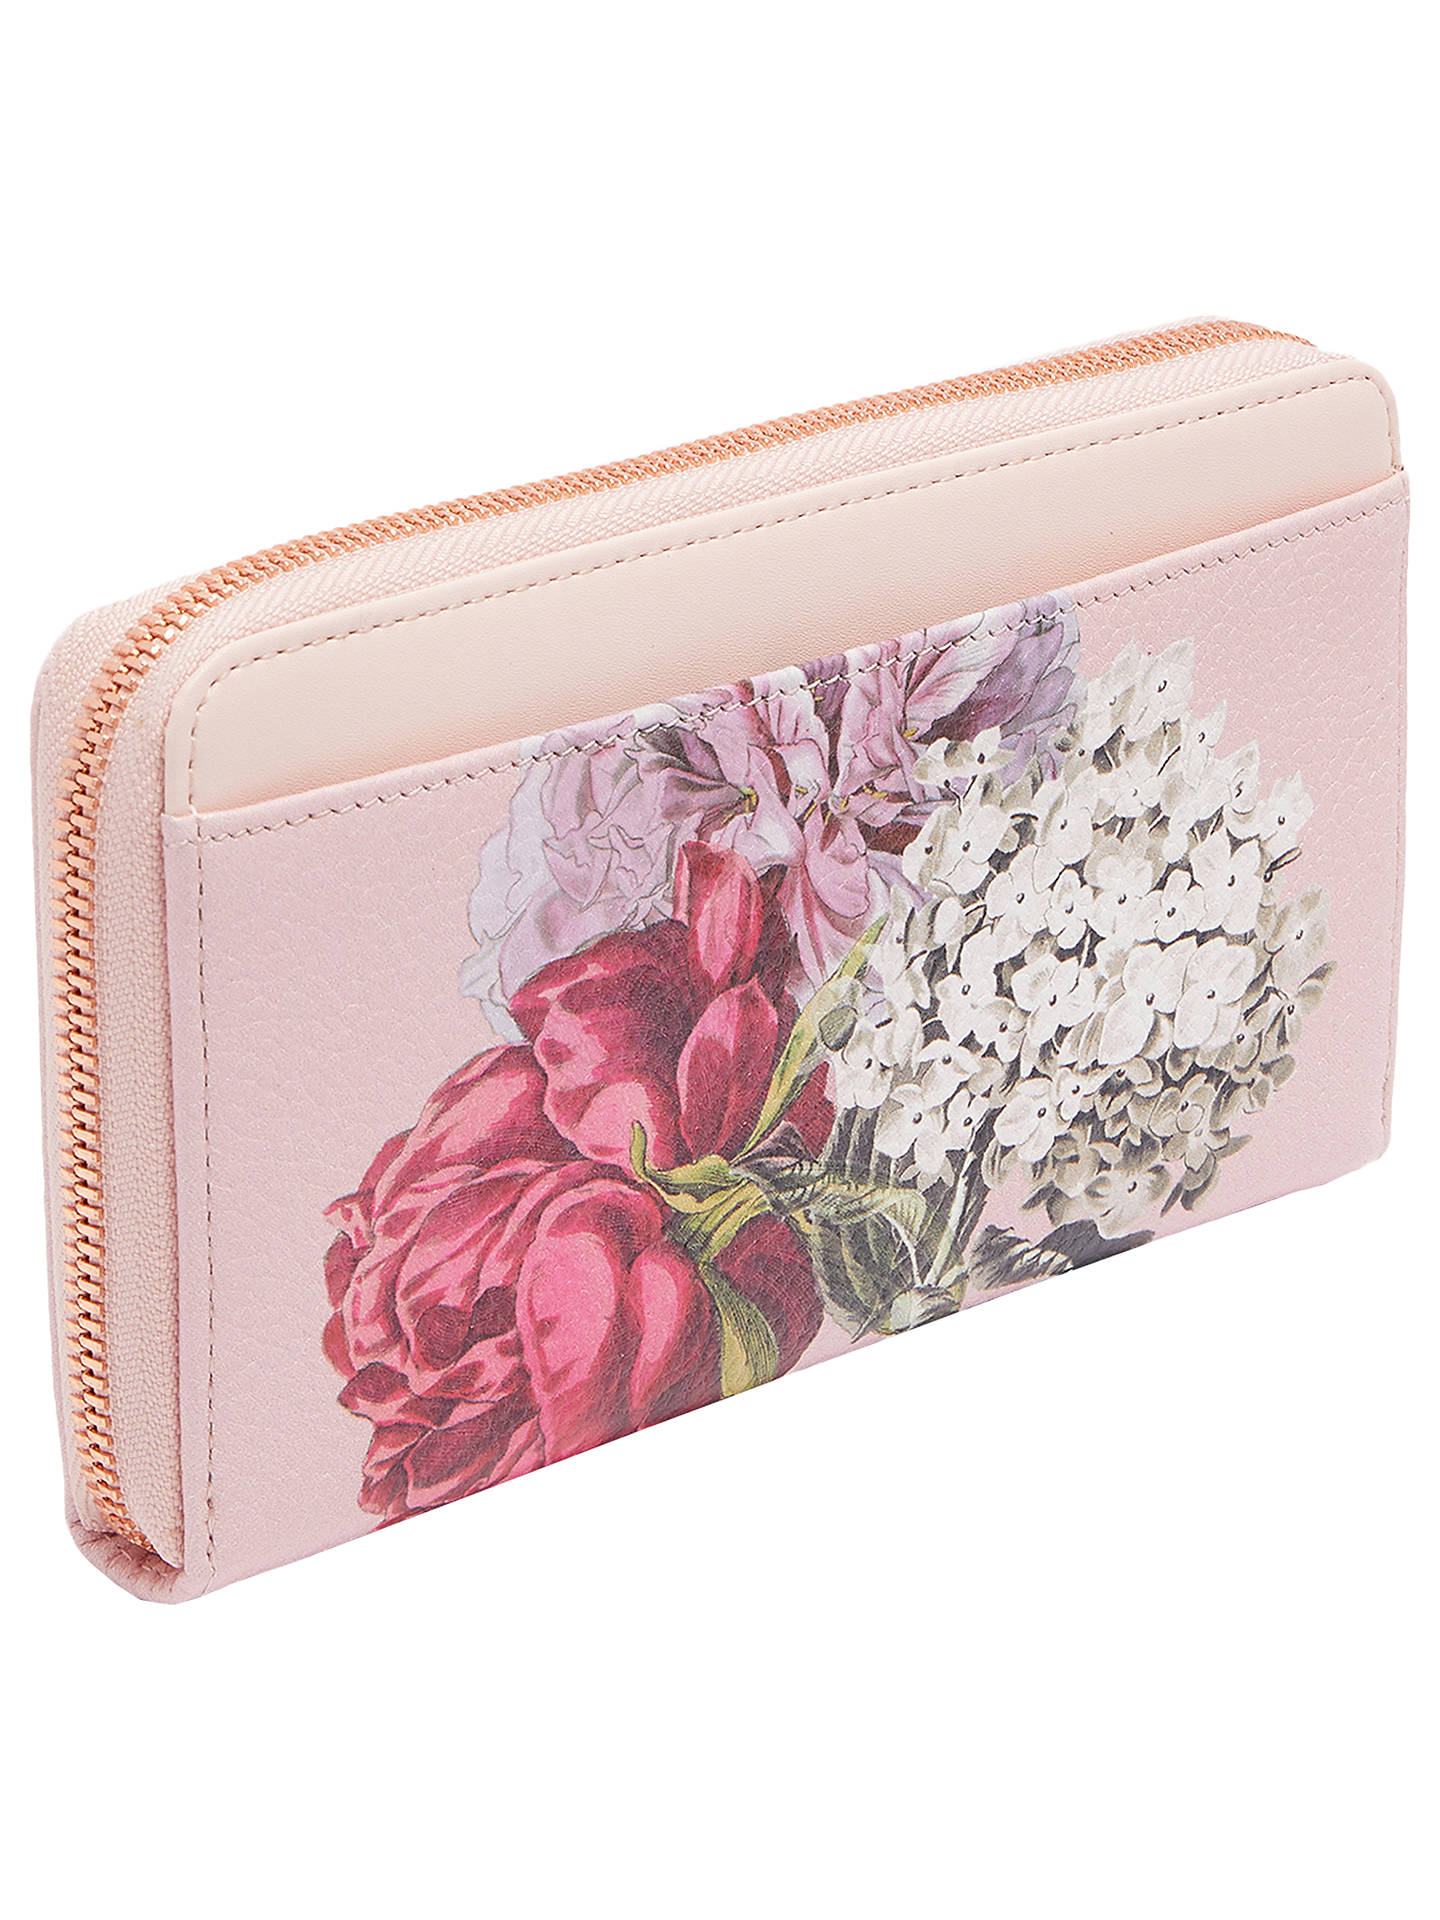 a215945e70 Buy Ted Baker Evara Leather Palace Gardens Matinee Purse, Dusky Pink Online  at johnlewis.